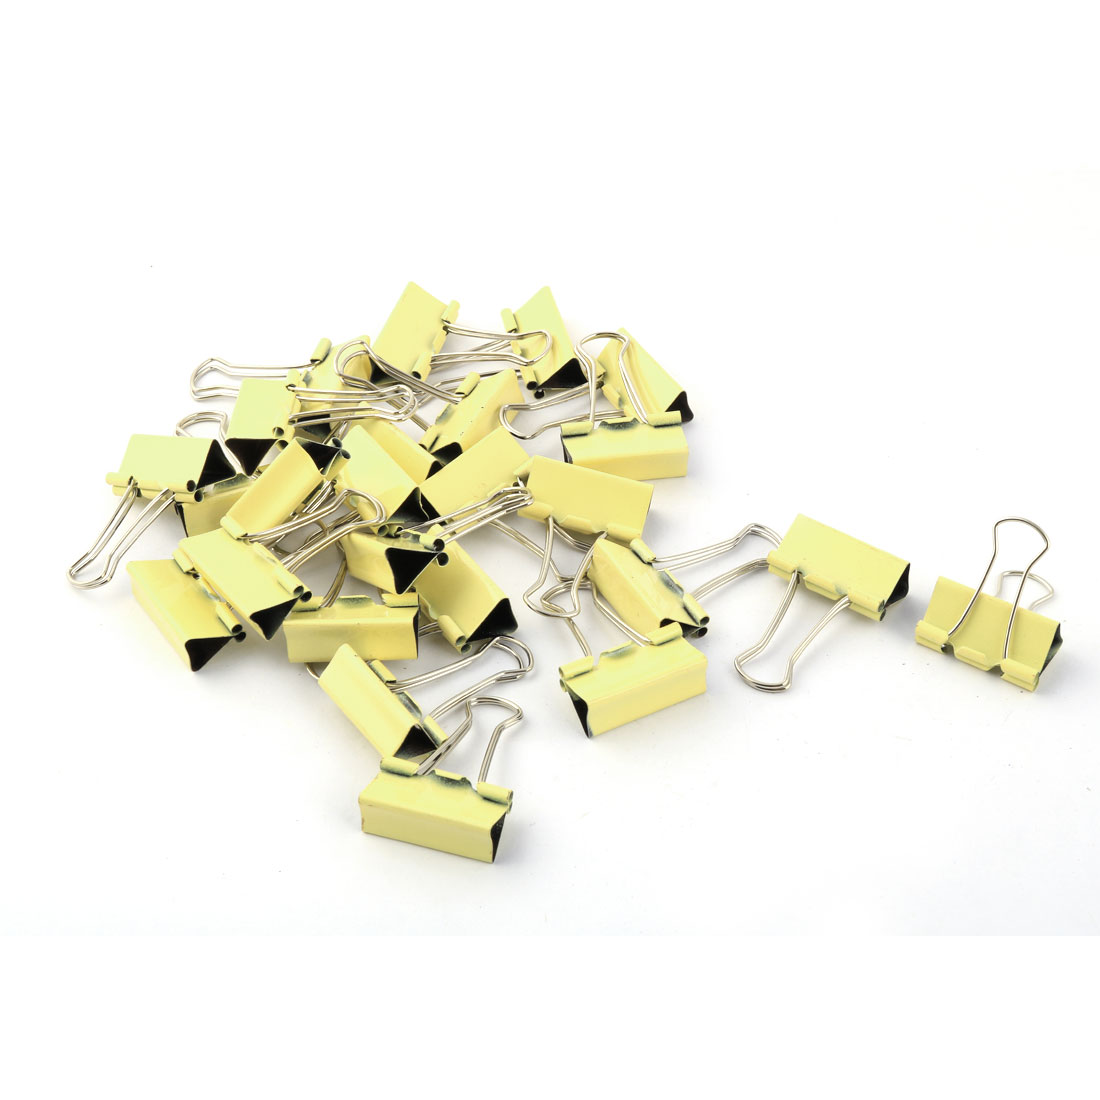 Office Supplies Student Folder Paper Money Binder Clip Yellow Silver Tone 25pcs